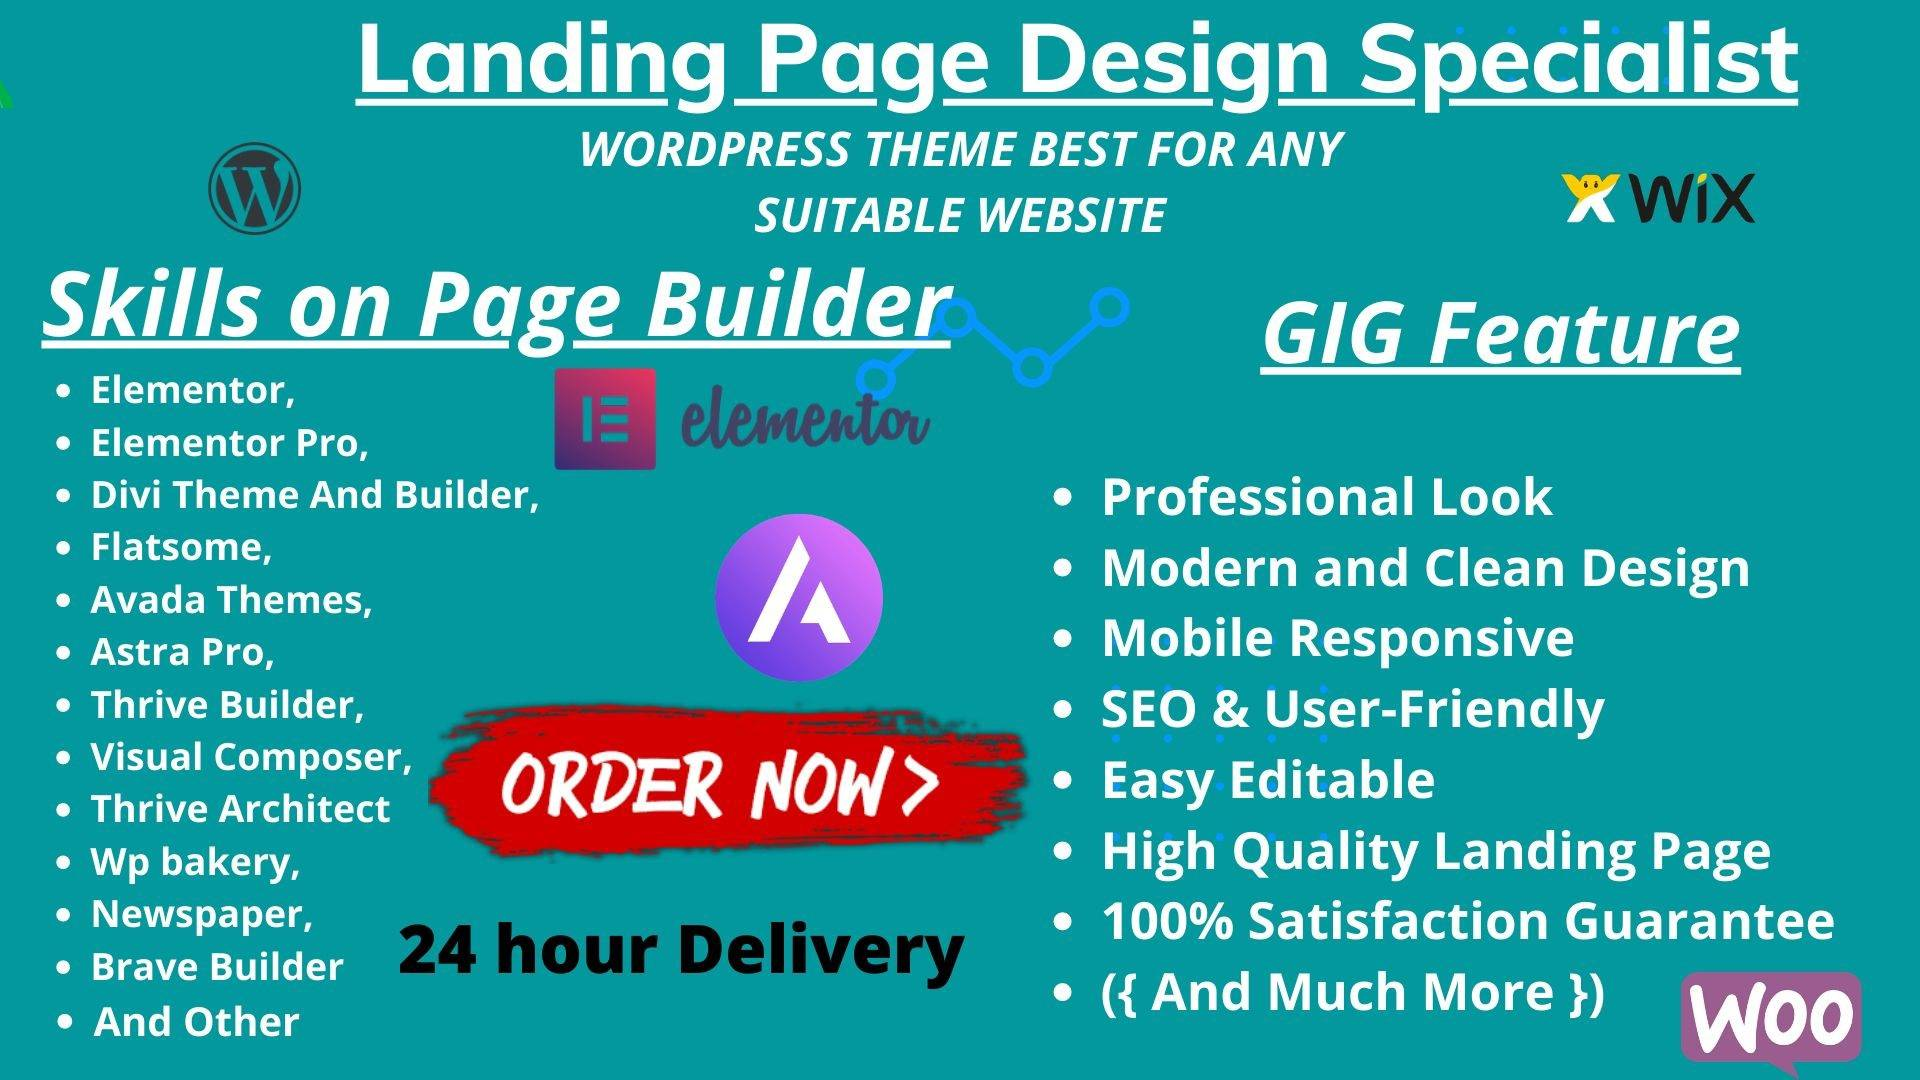 I will design wordpress landing page design with page builder